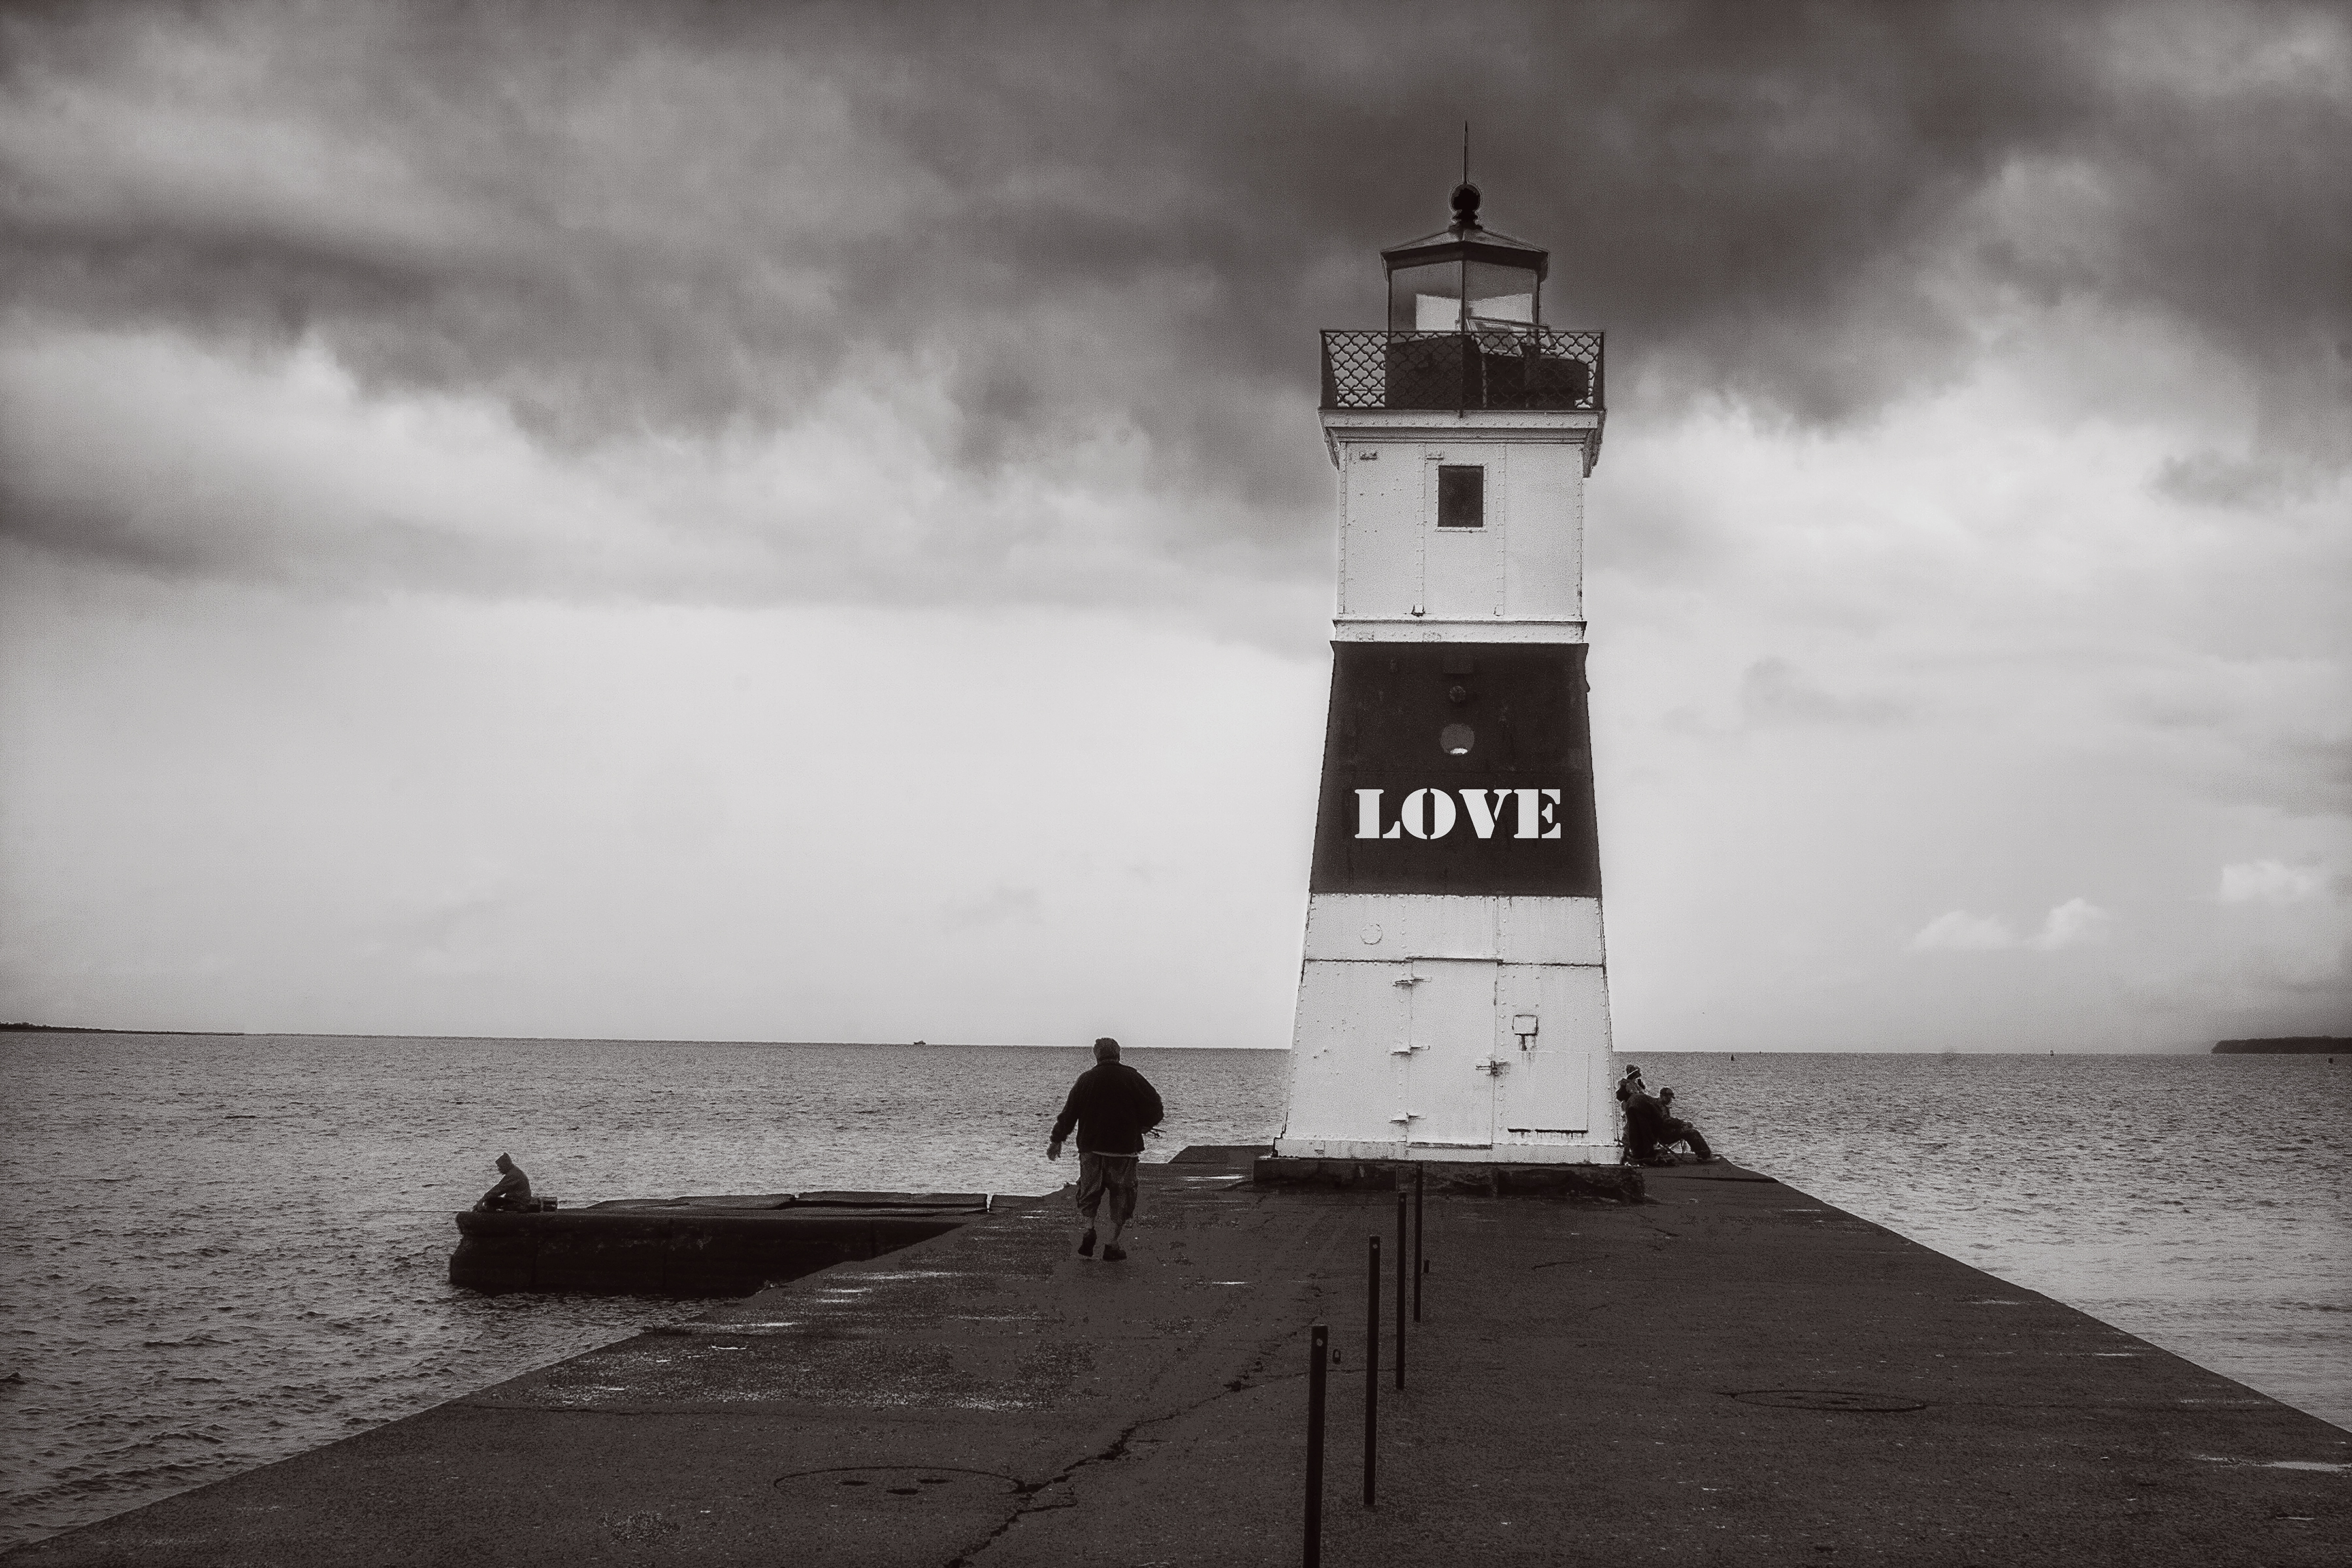 Love Is The Lighthouse In A Storm